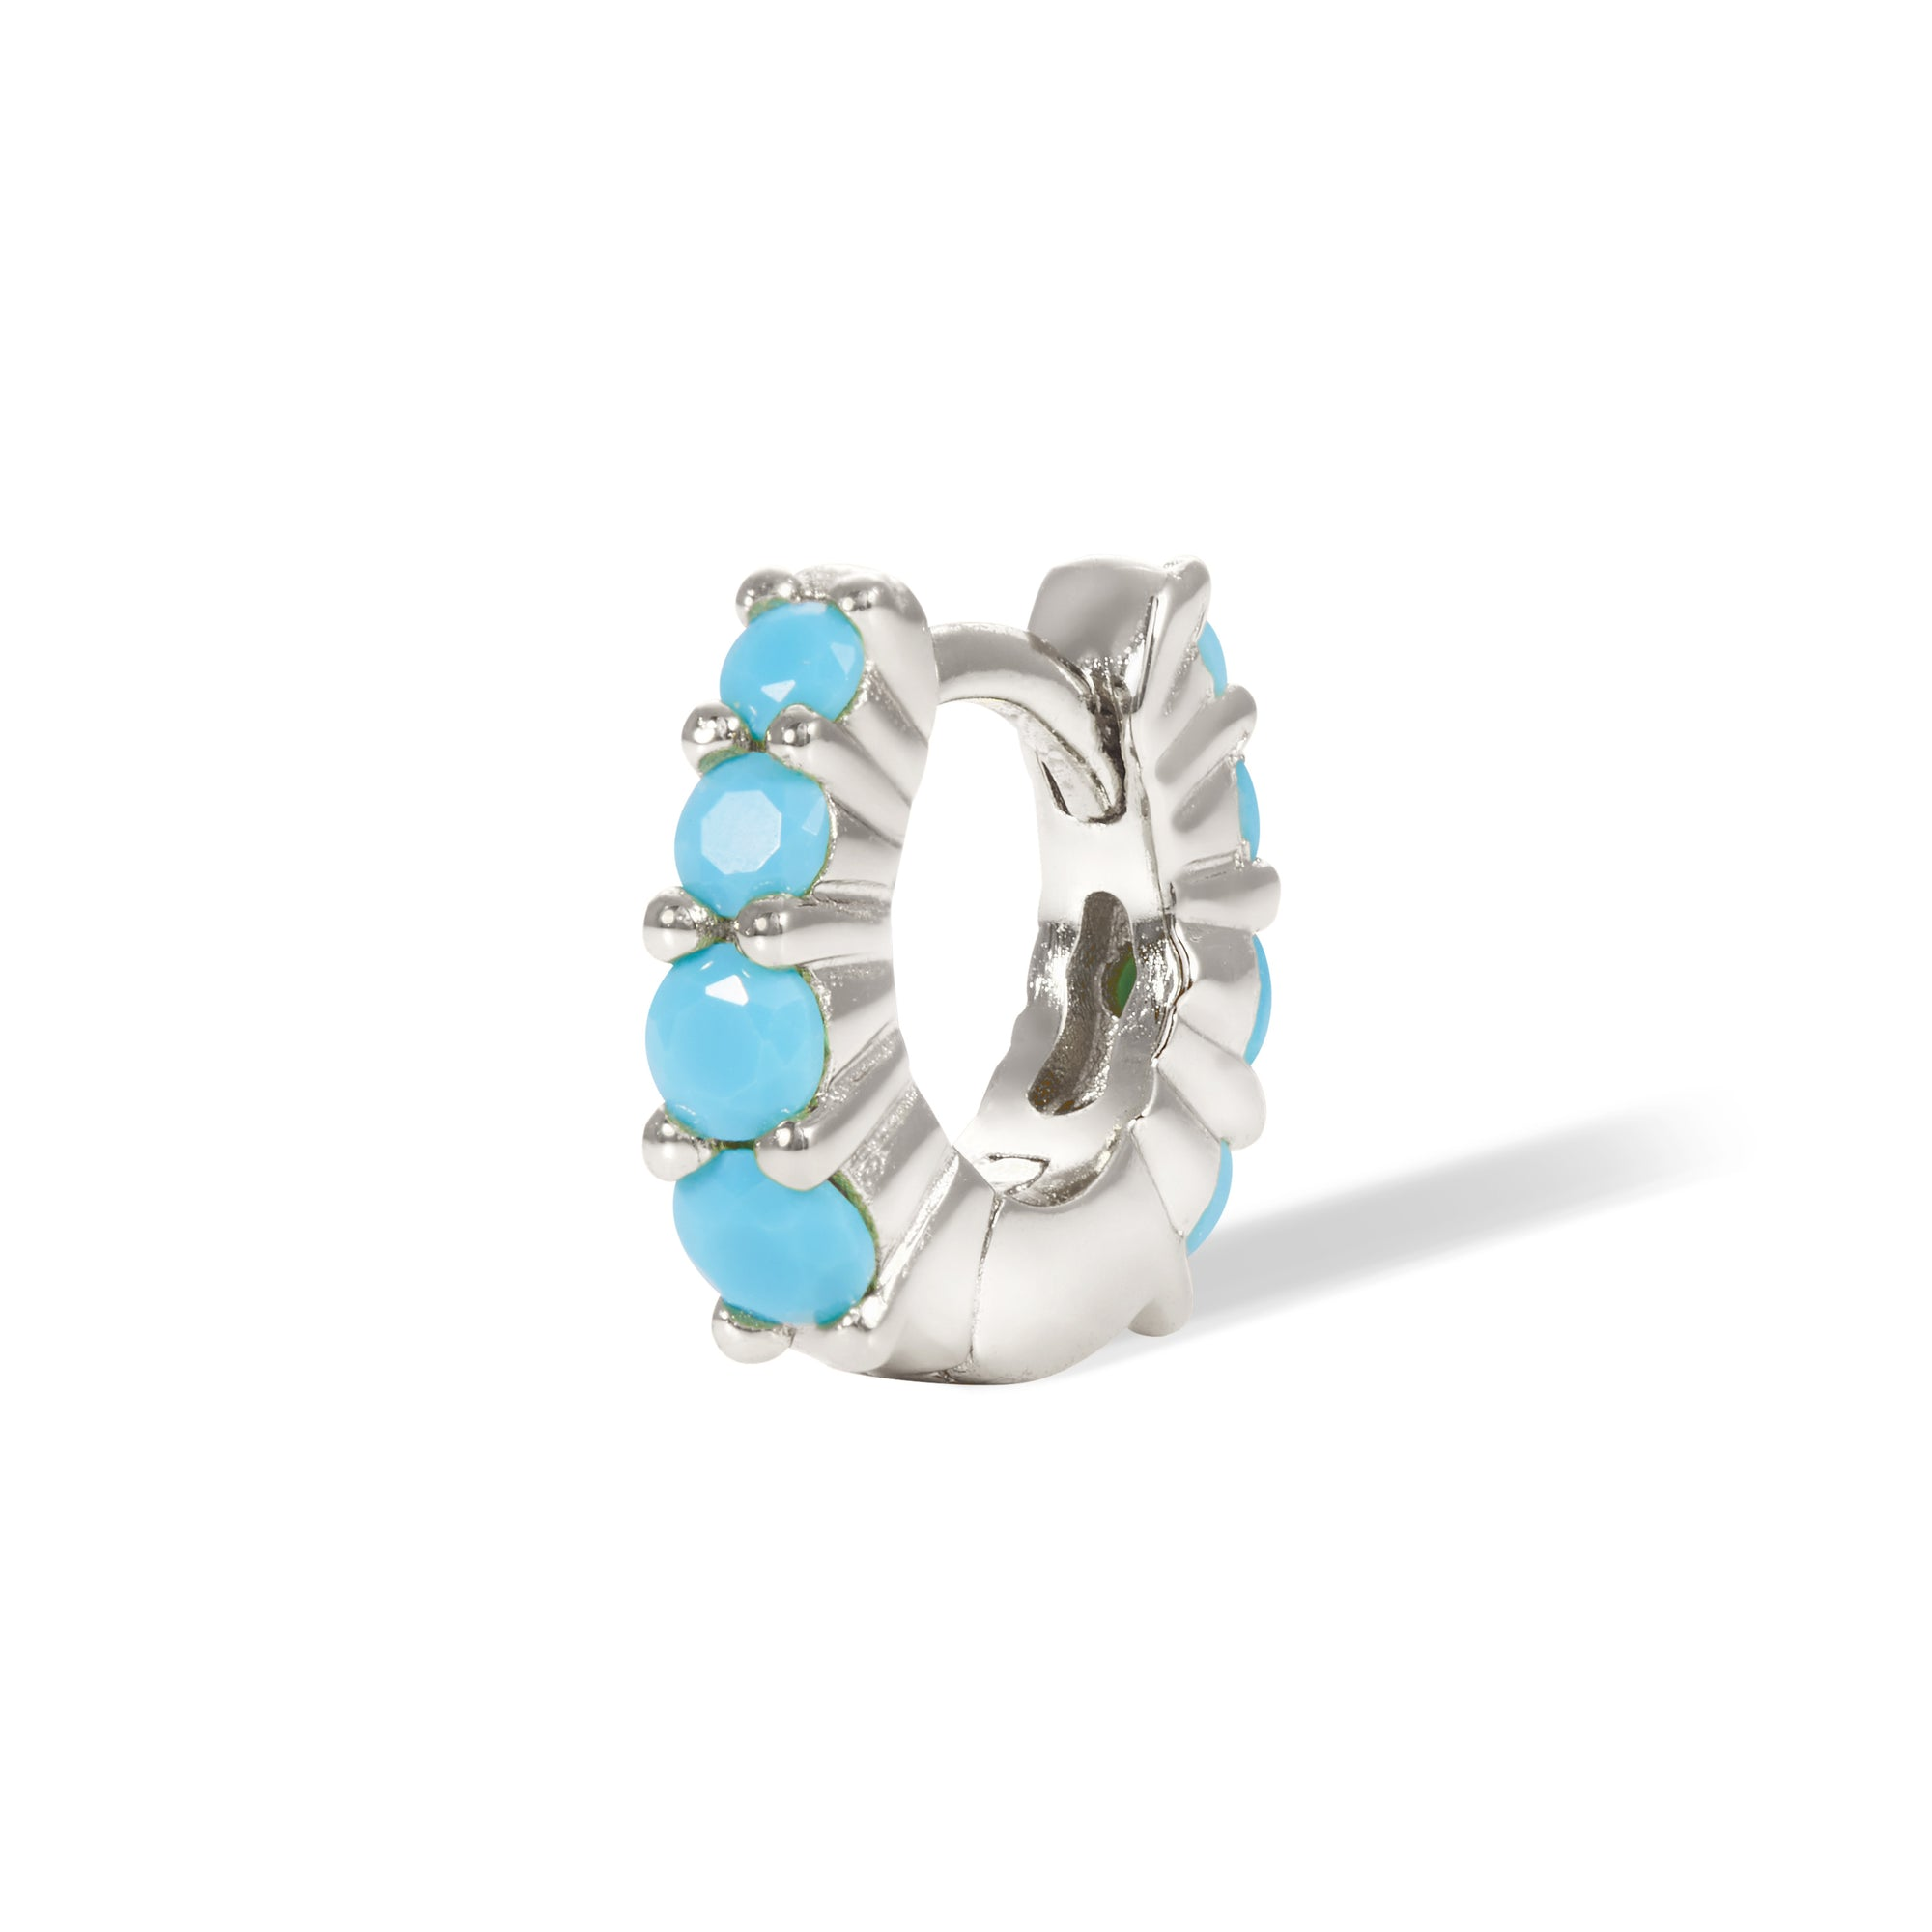 Mini Gala 6.5mm  turquoise sterling silver huggie